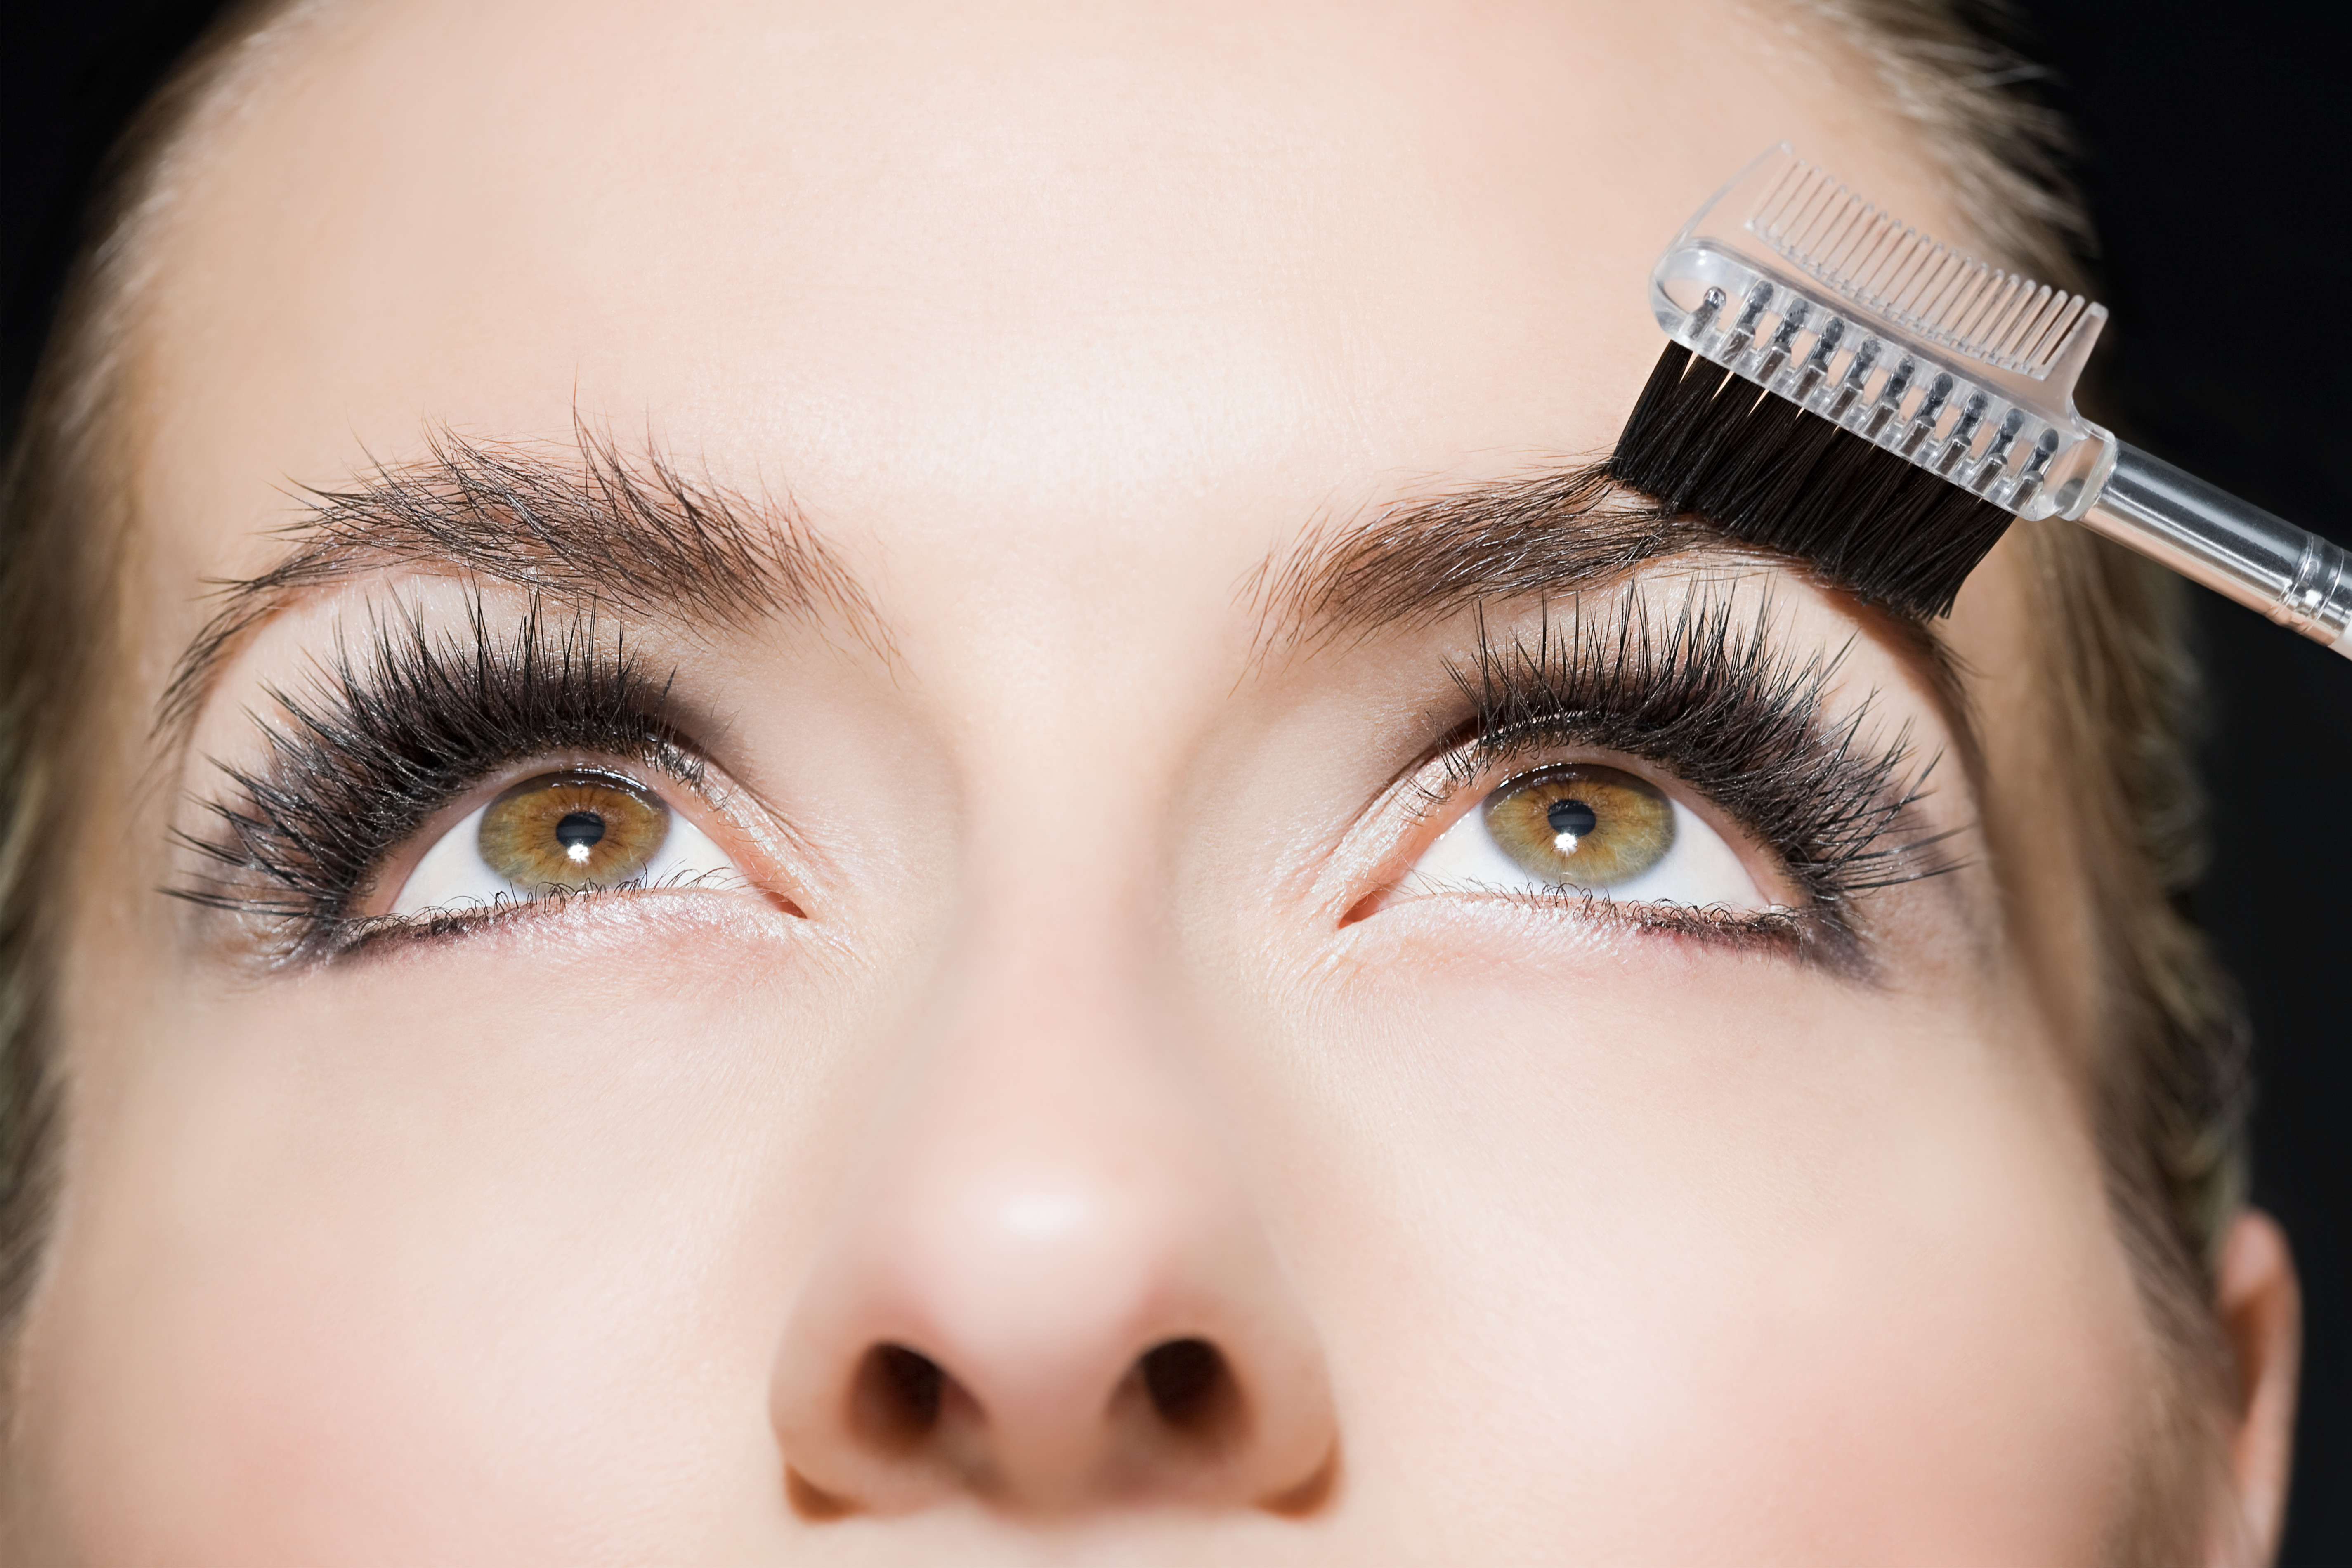 Get Perfect Brows without Waxing or Tweezing - NewBeauty